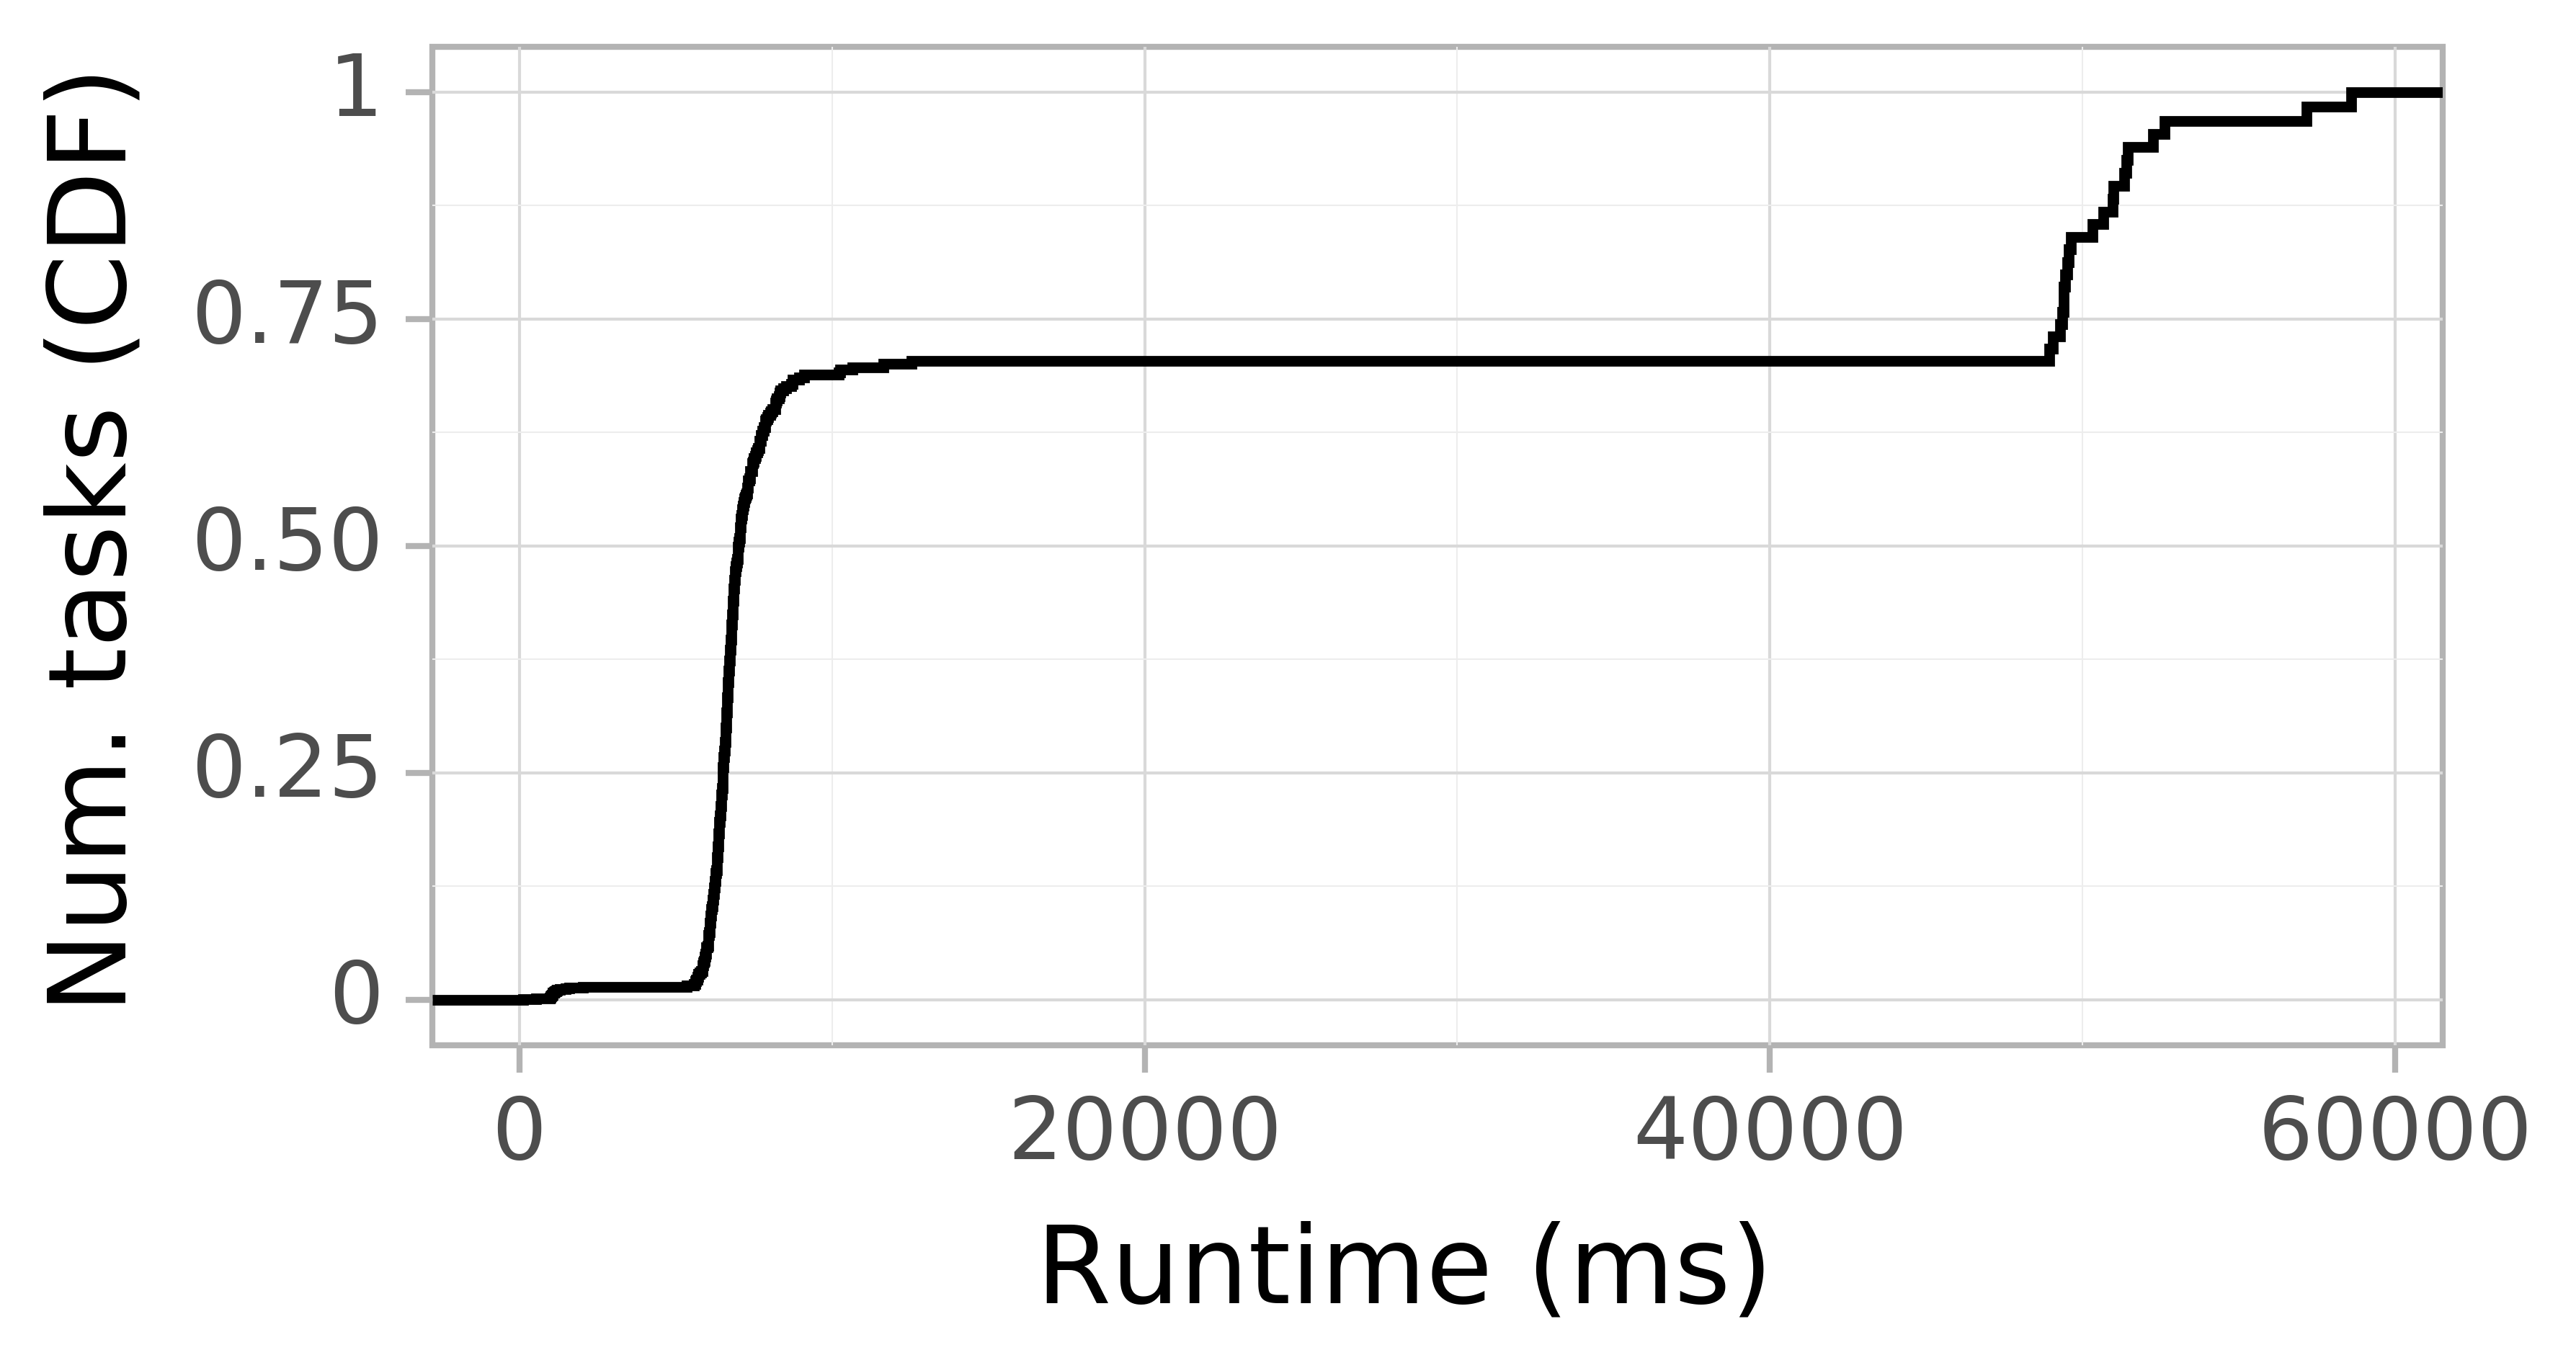 Task runtime CDF graph for the askalon-new_ee60 trace.